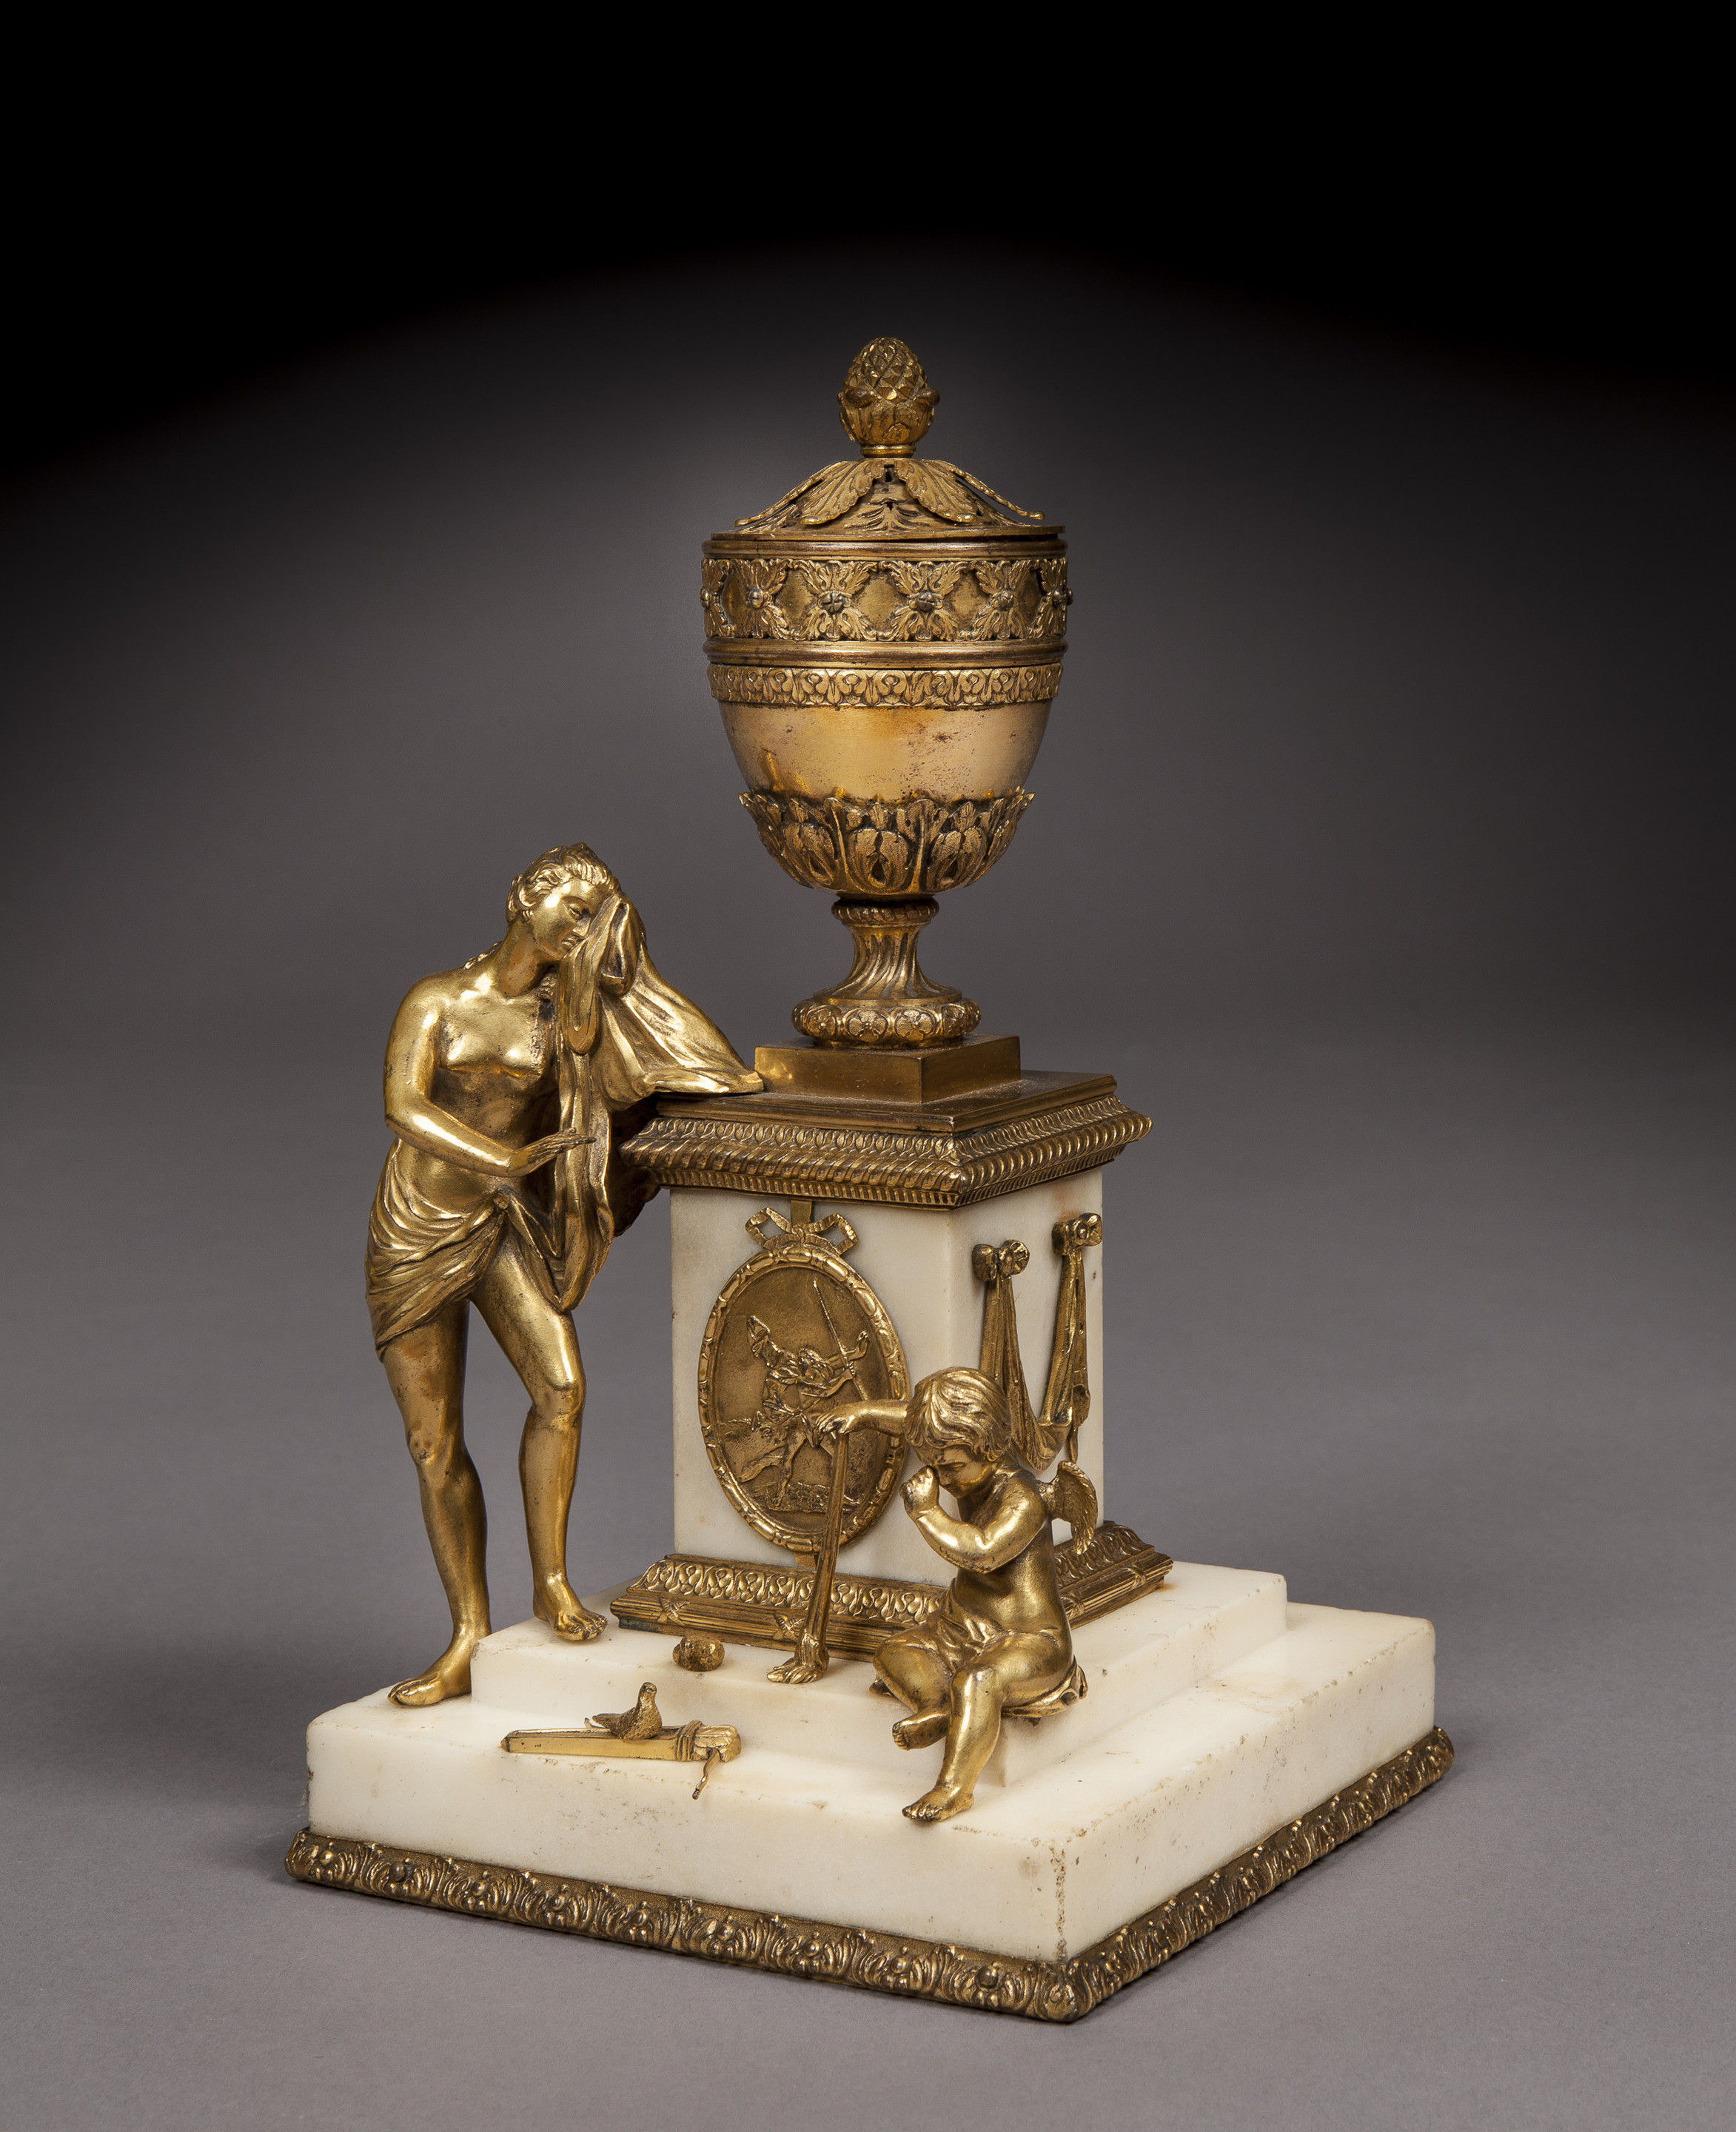 hall pottery vase of antique 18th century matthew boulton venus vase ormolu with regard to antique 18th century matthew boulton venus vase ormolu parfumerie